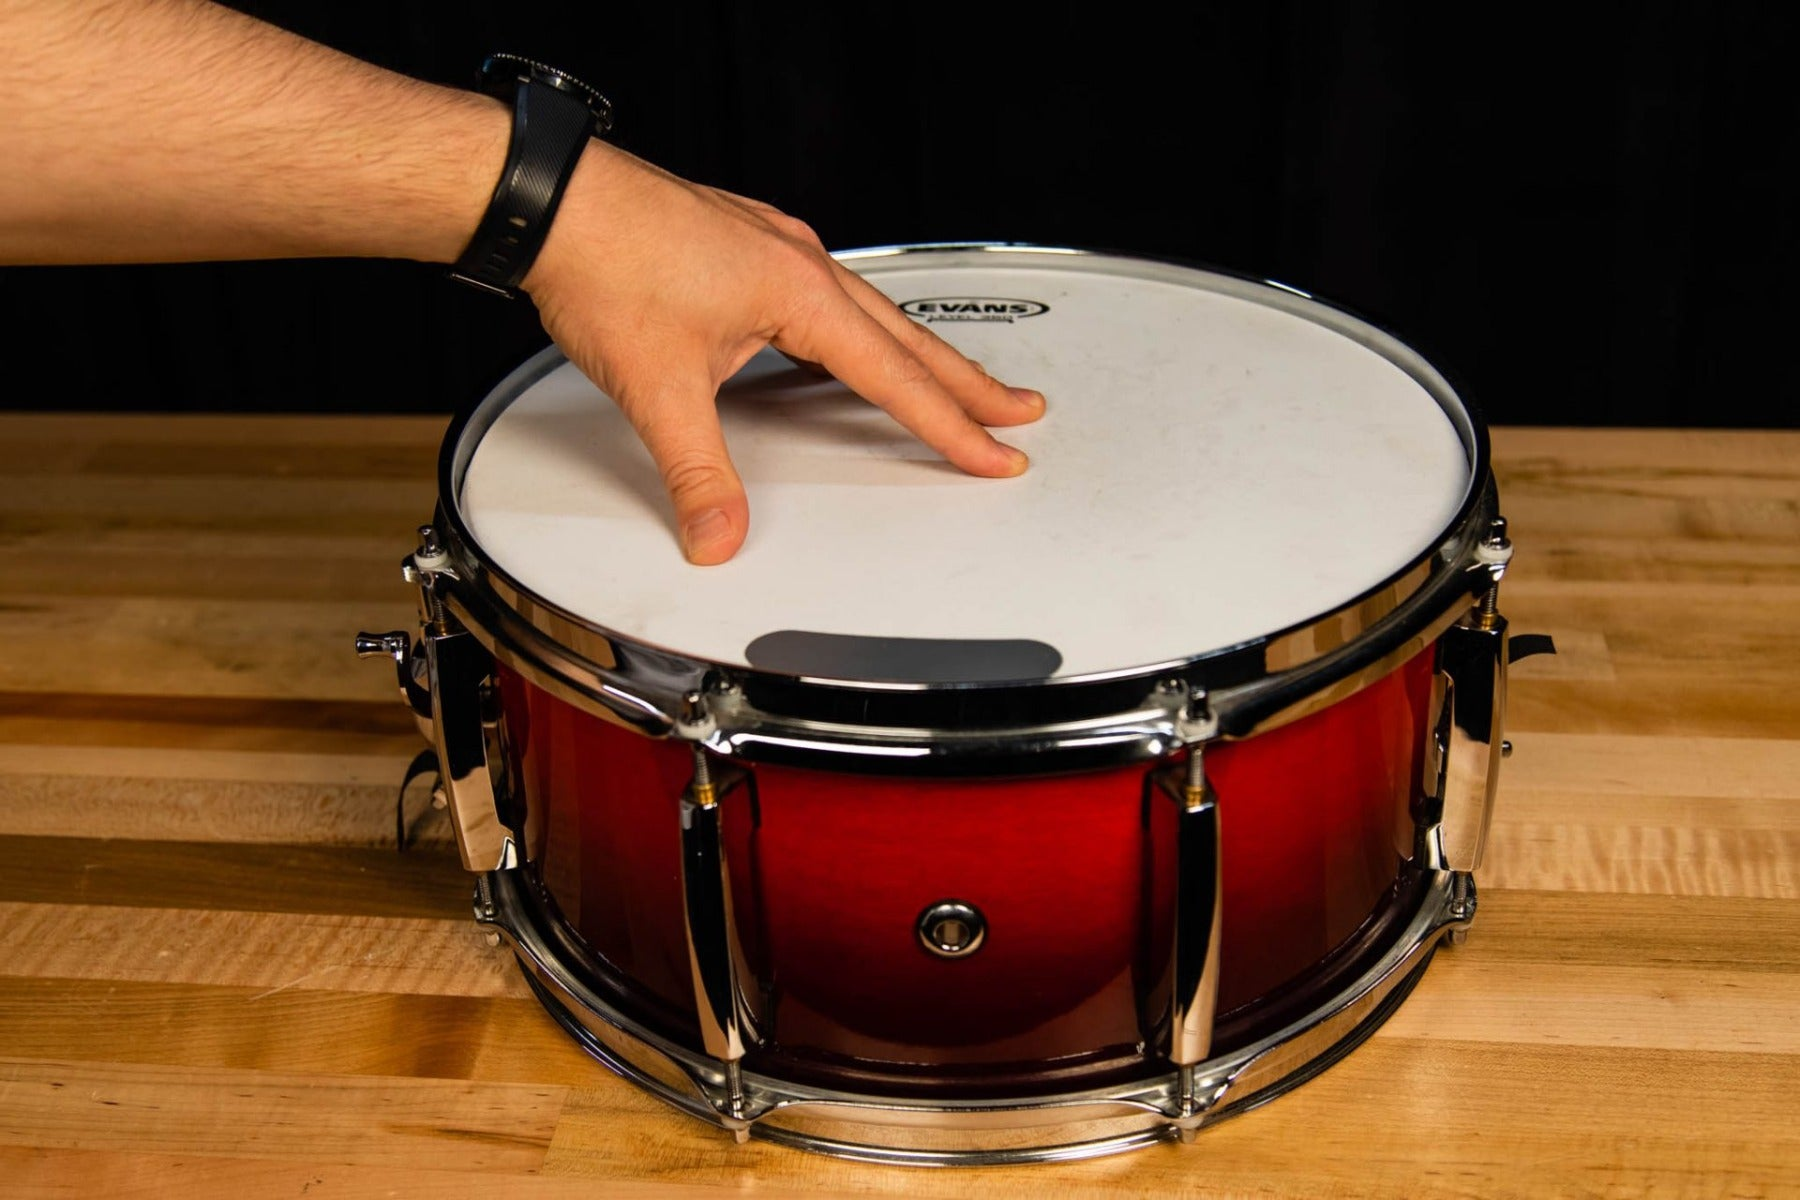 snare drum with hand on drum